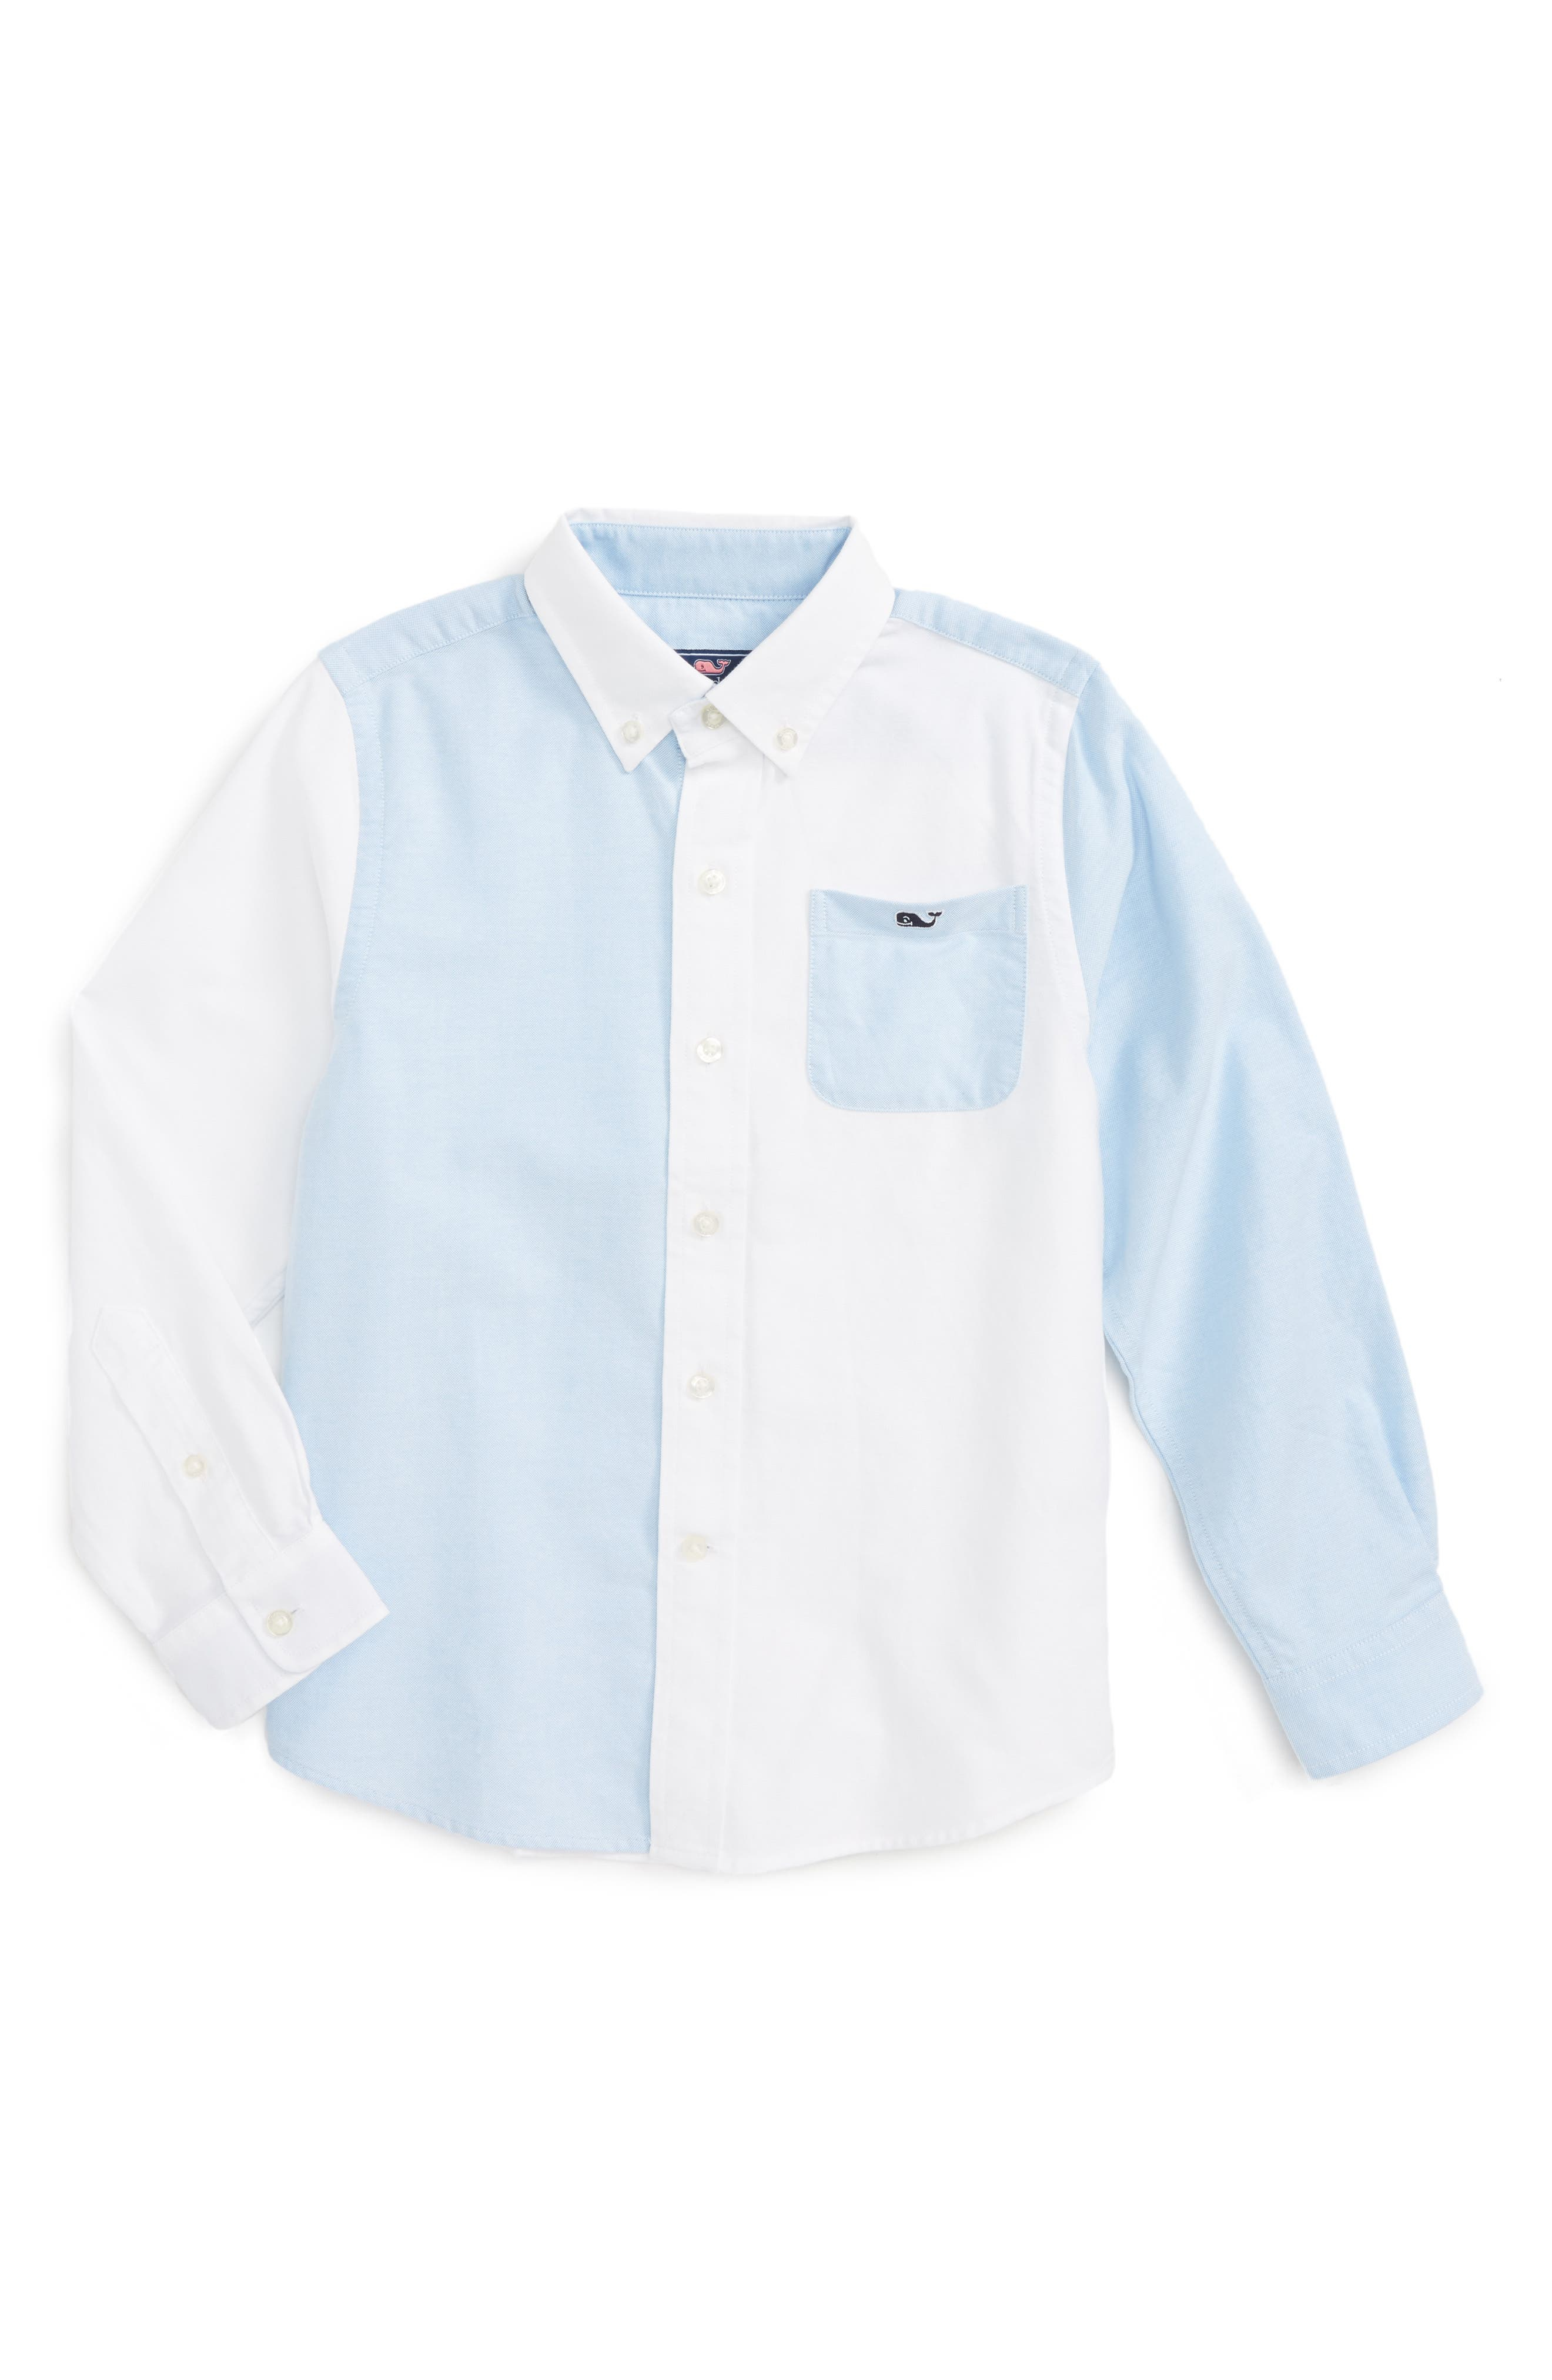 Party Whale Oxford Shirt,                             Main thumbnail 1, color,                             408